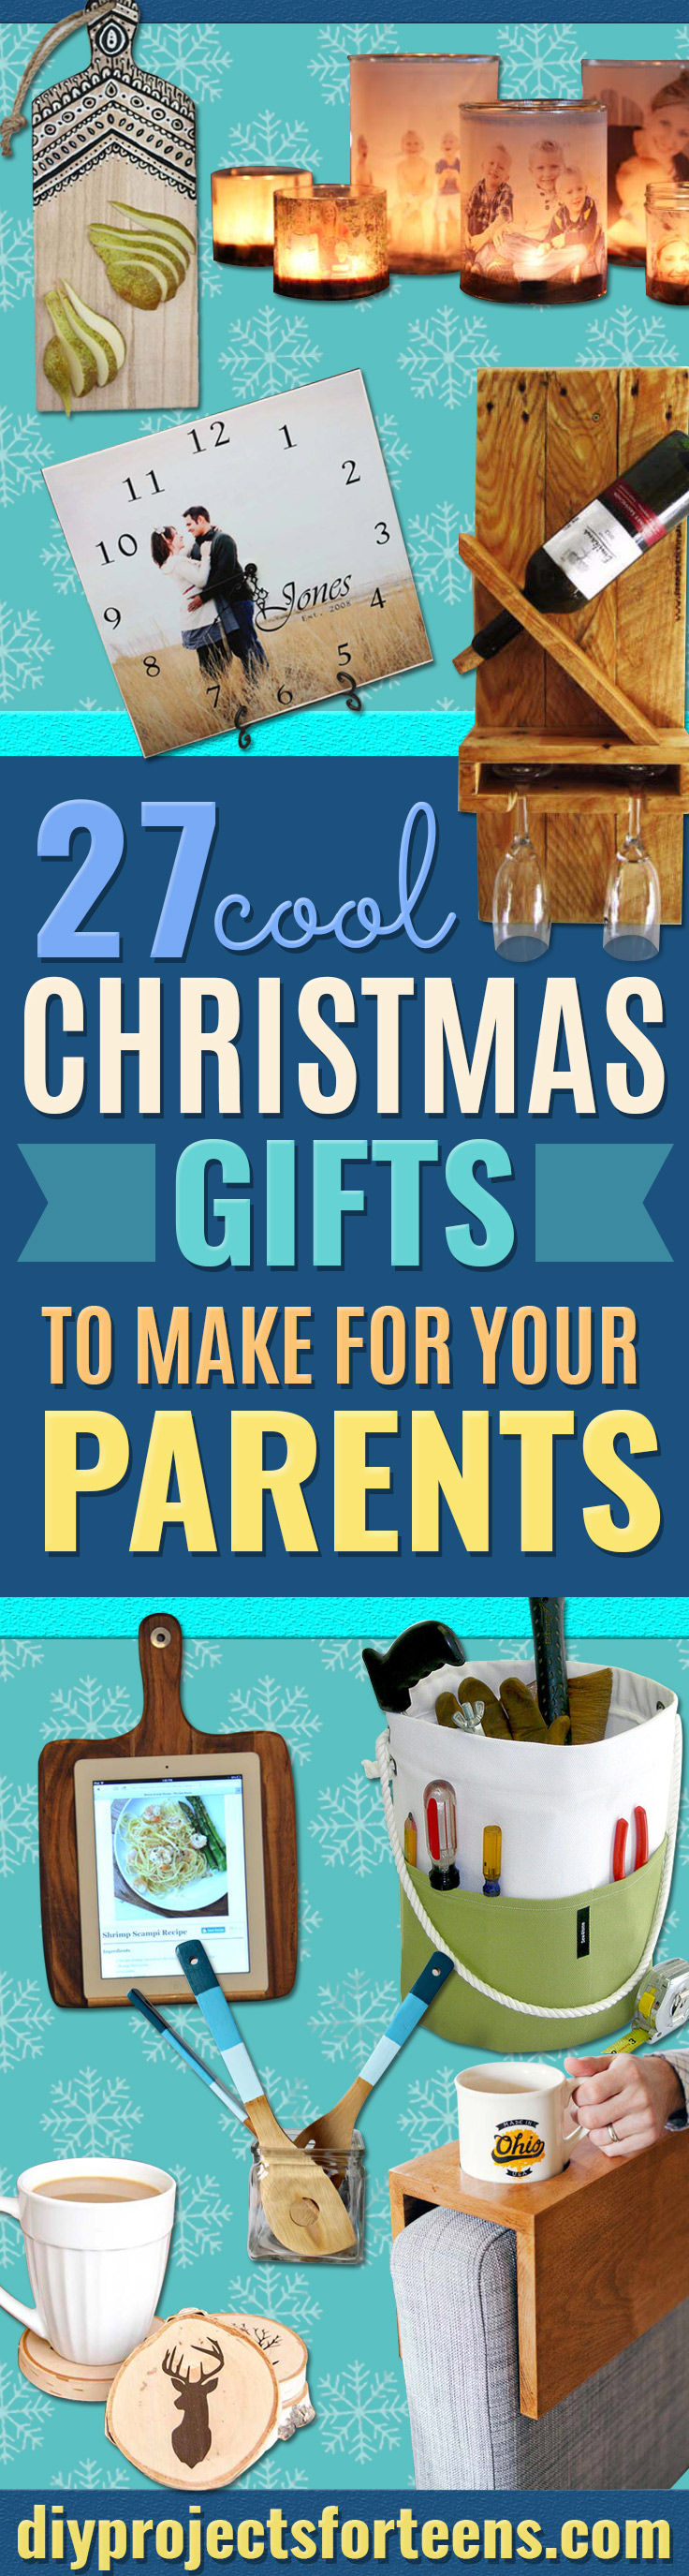 Cool Christmas Gift For Dad.Cool Christmas Gifts To Make For Your Parents